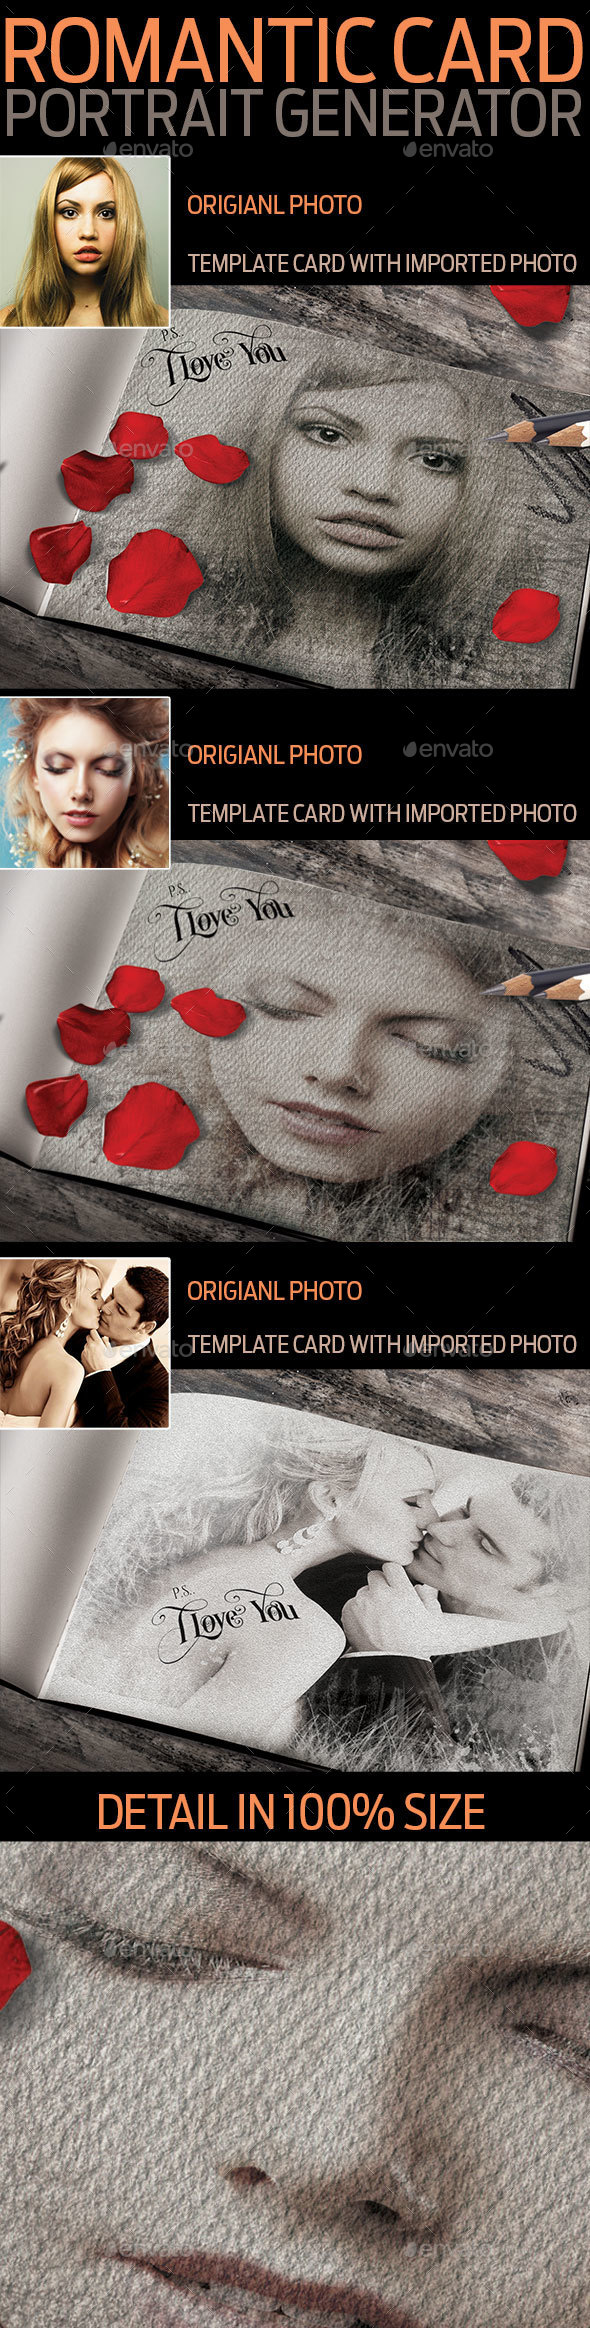 Romantic Card Portrait Drawing Generator - Graphics